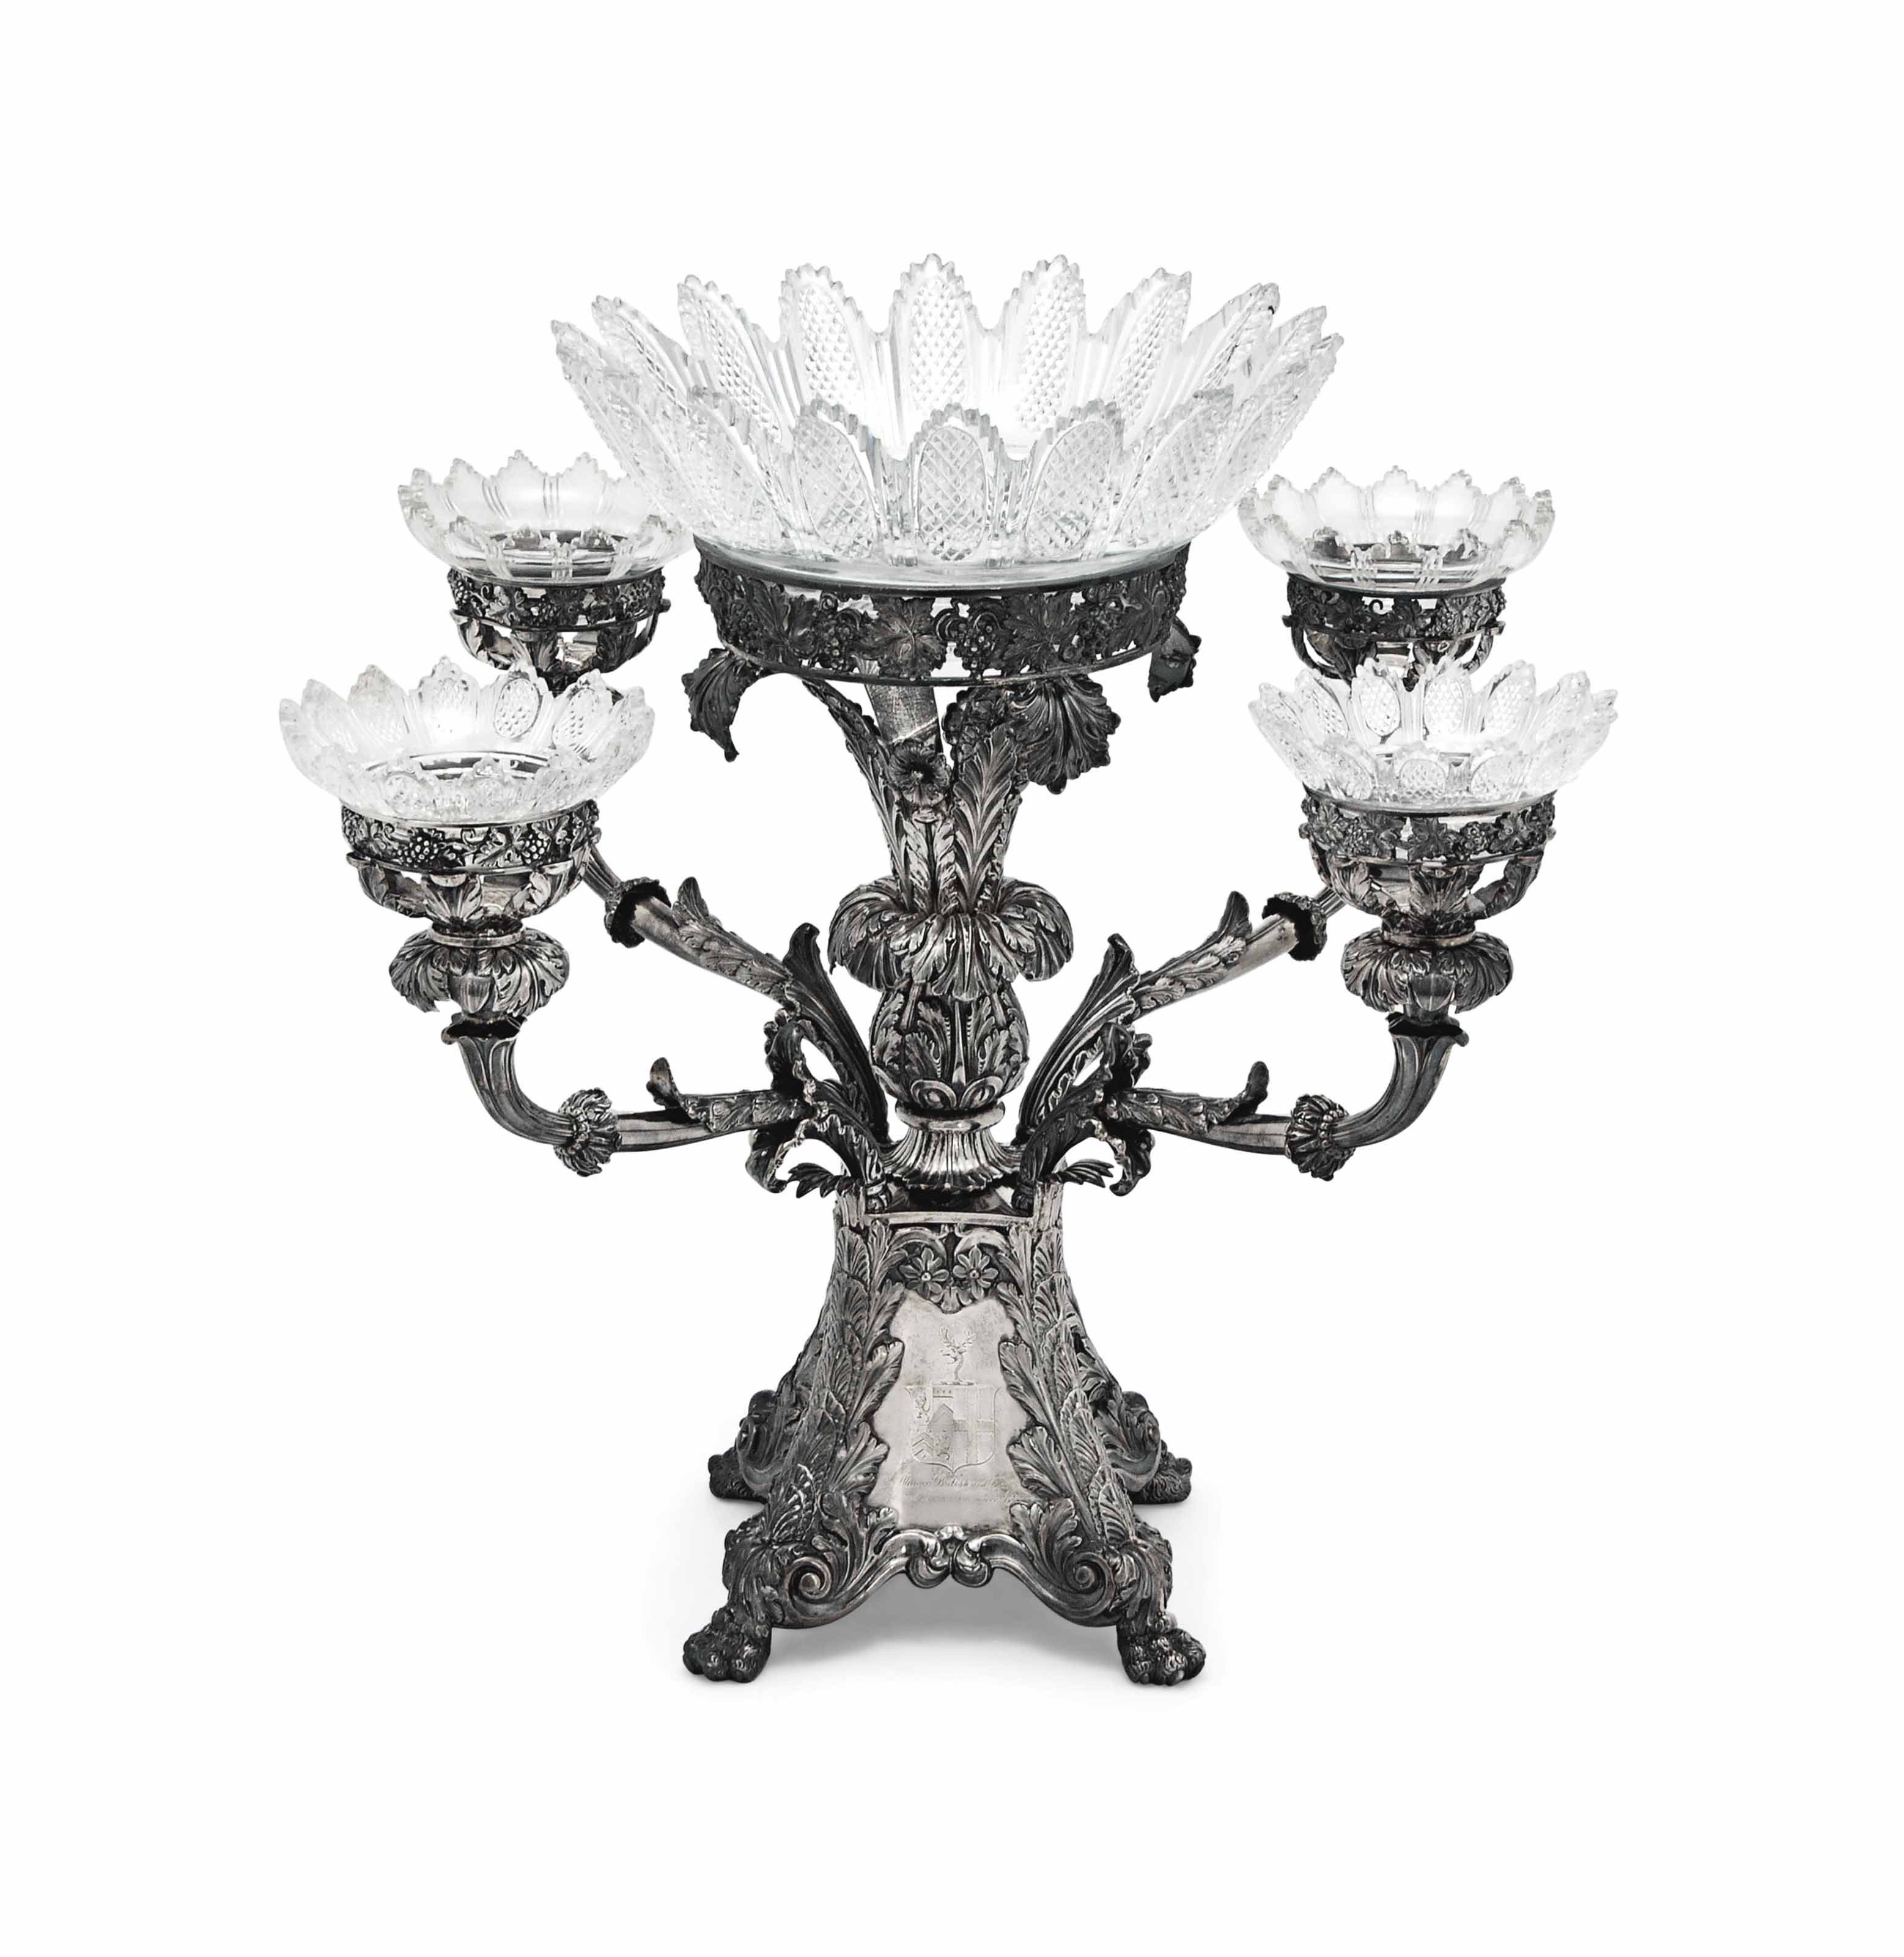 A GEORGE IV SILVER EPERGNE